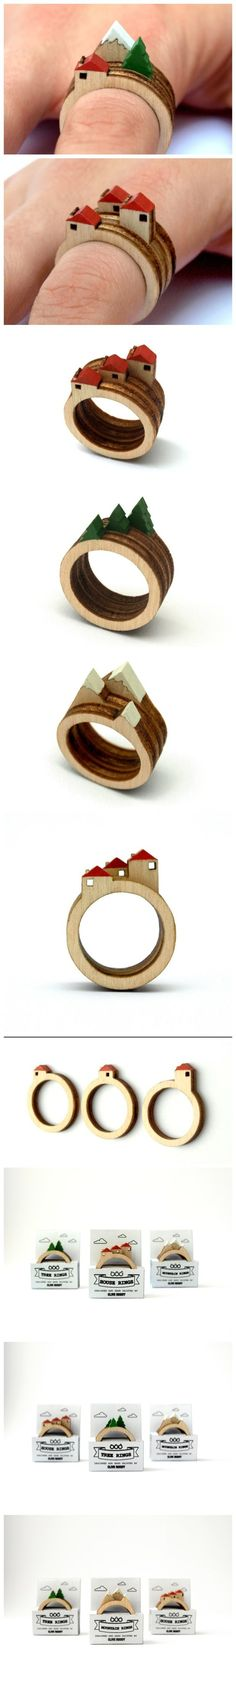 Coolest thing I've ever seen Wooden Jewelry, Diy Jewelry, Jewelery, Jewelry Design, Jewelry Making, Wood Animals, Ideas Joyería, Wood Rings, Metal Clay